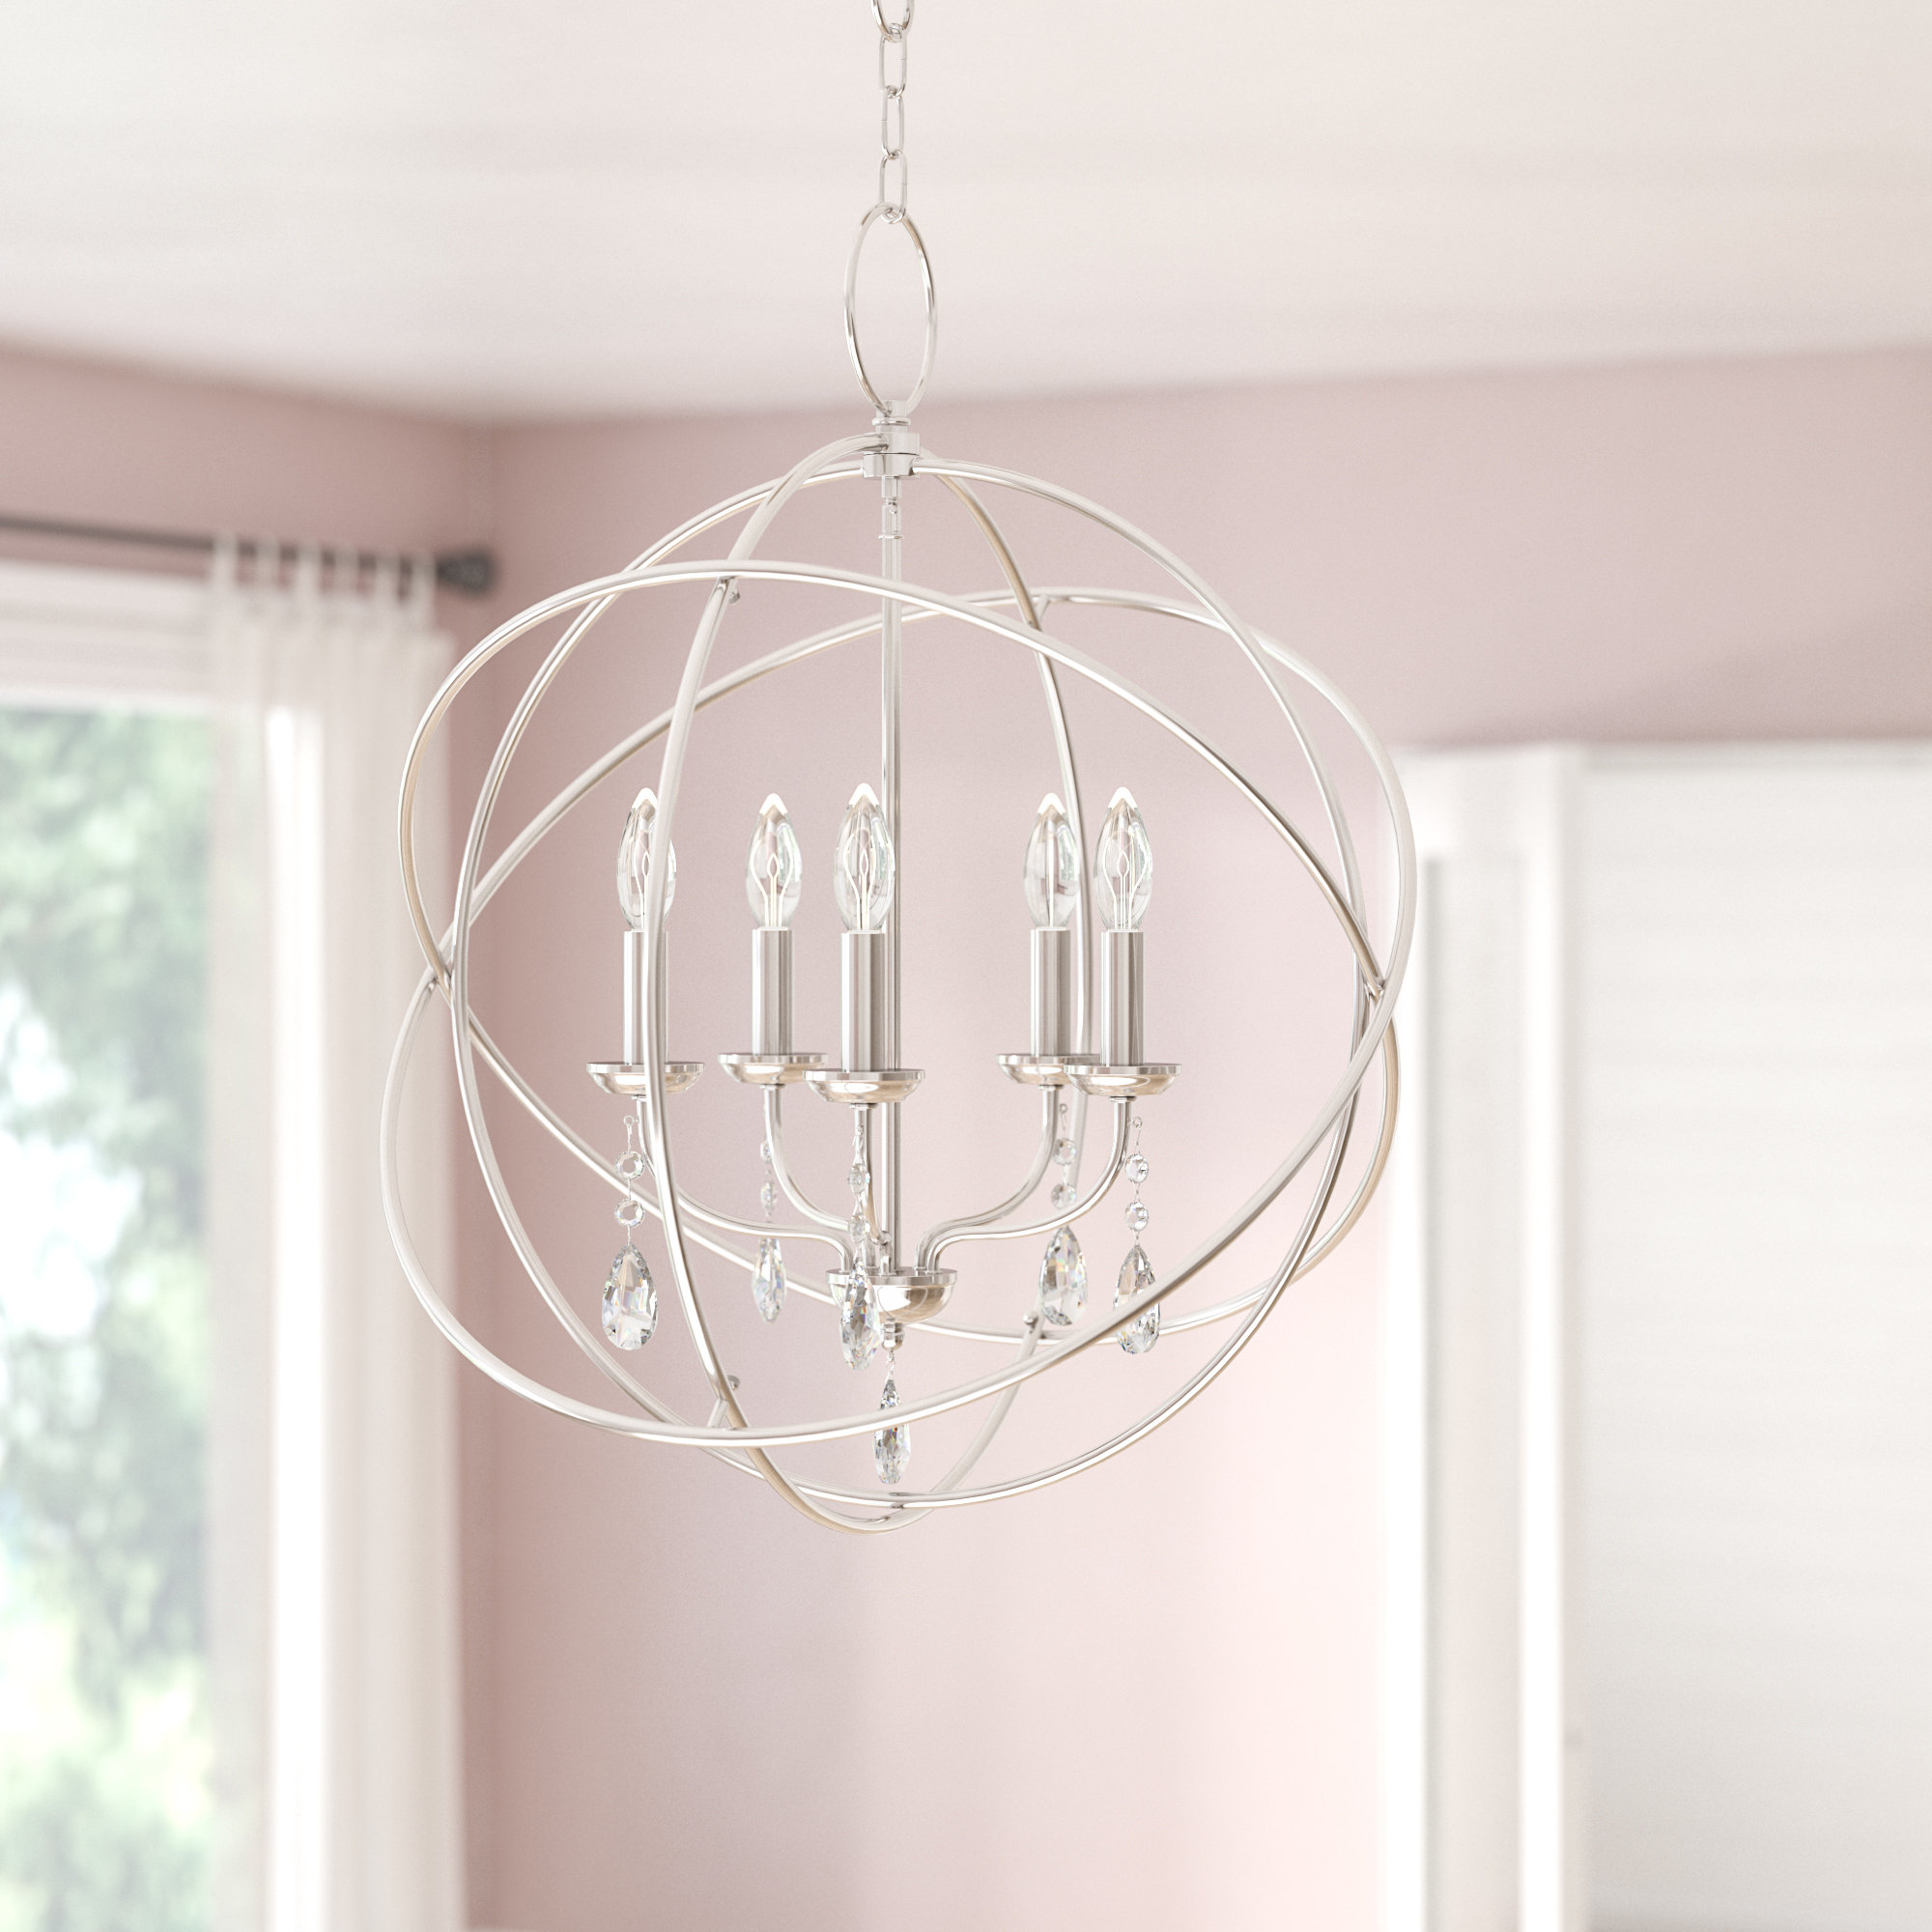 Best And Newest Verlene Foyer 5 Light Globe Chandeliers In Auberta 5 Light Globe Chandelier (View 1 of 20)